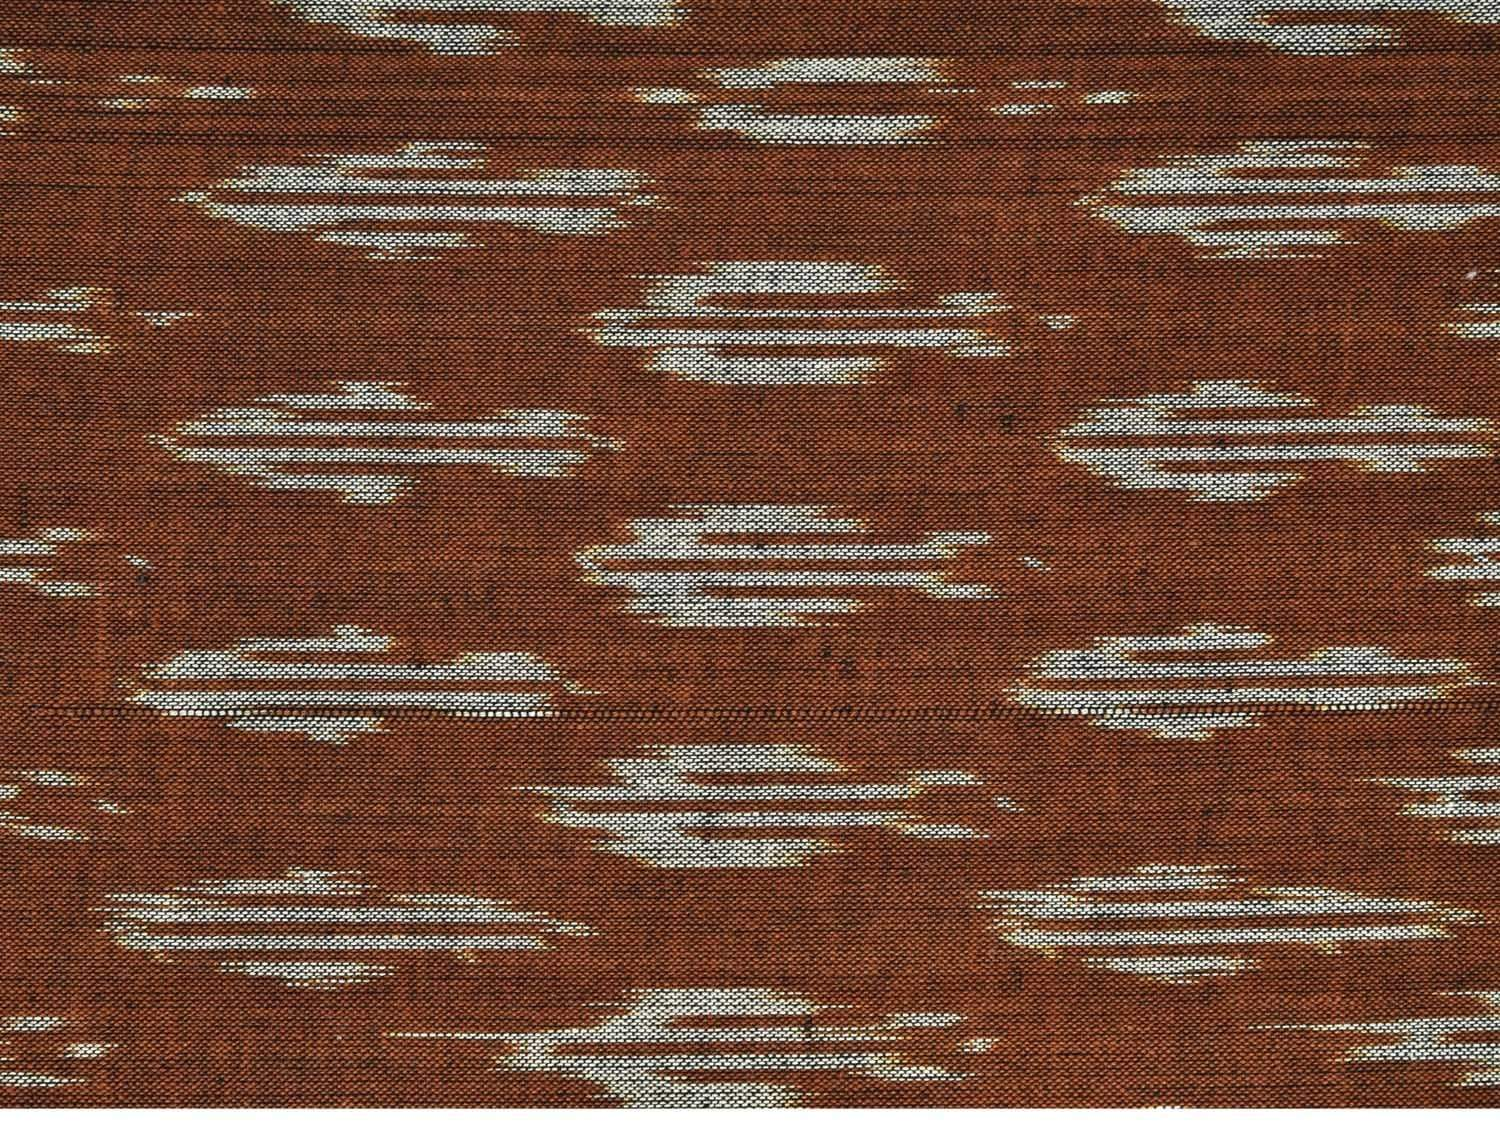 Olive Pochampally Ikat Cotton Handloom Fabric Material with Buta Design f0142